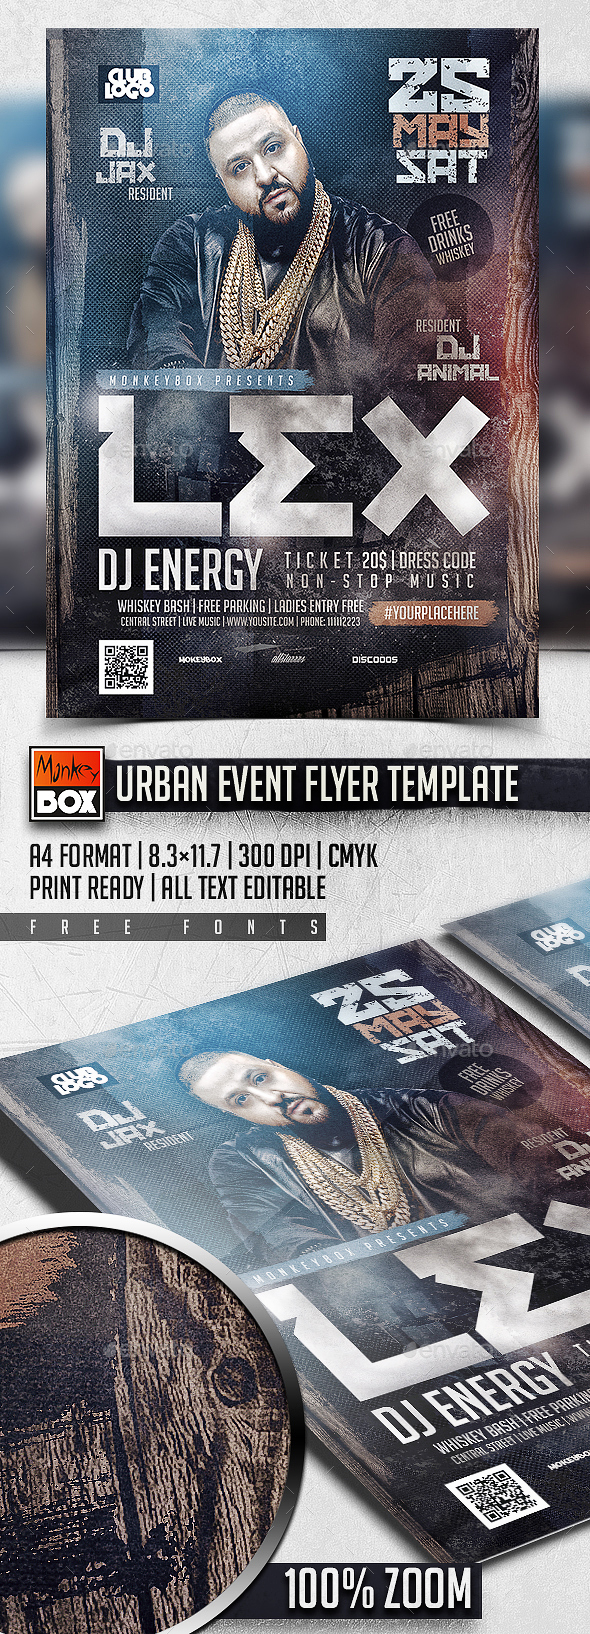 Urban Event Flyer Template